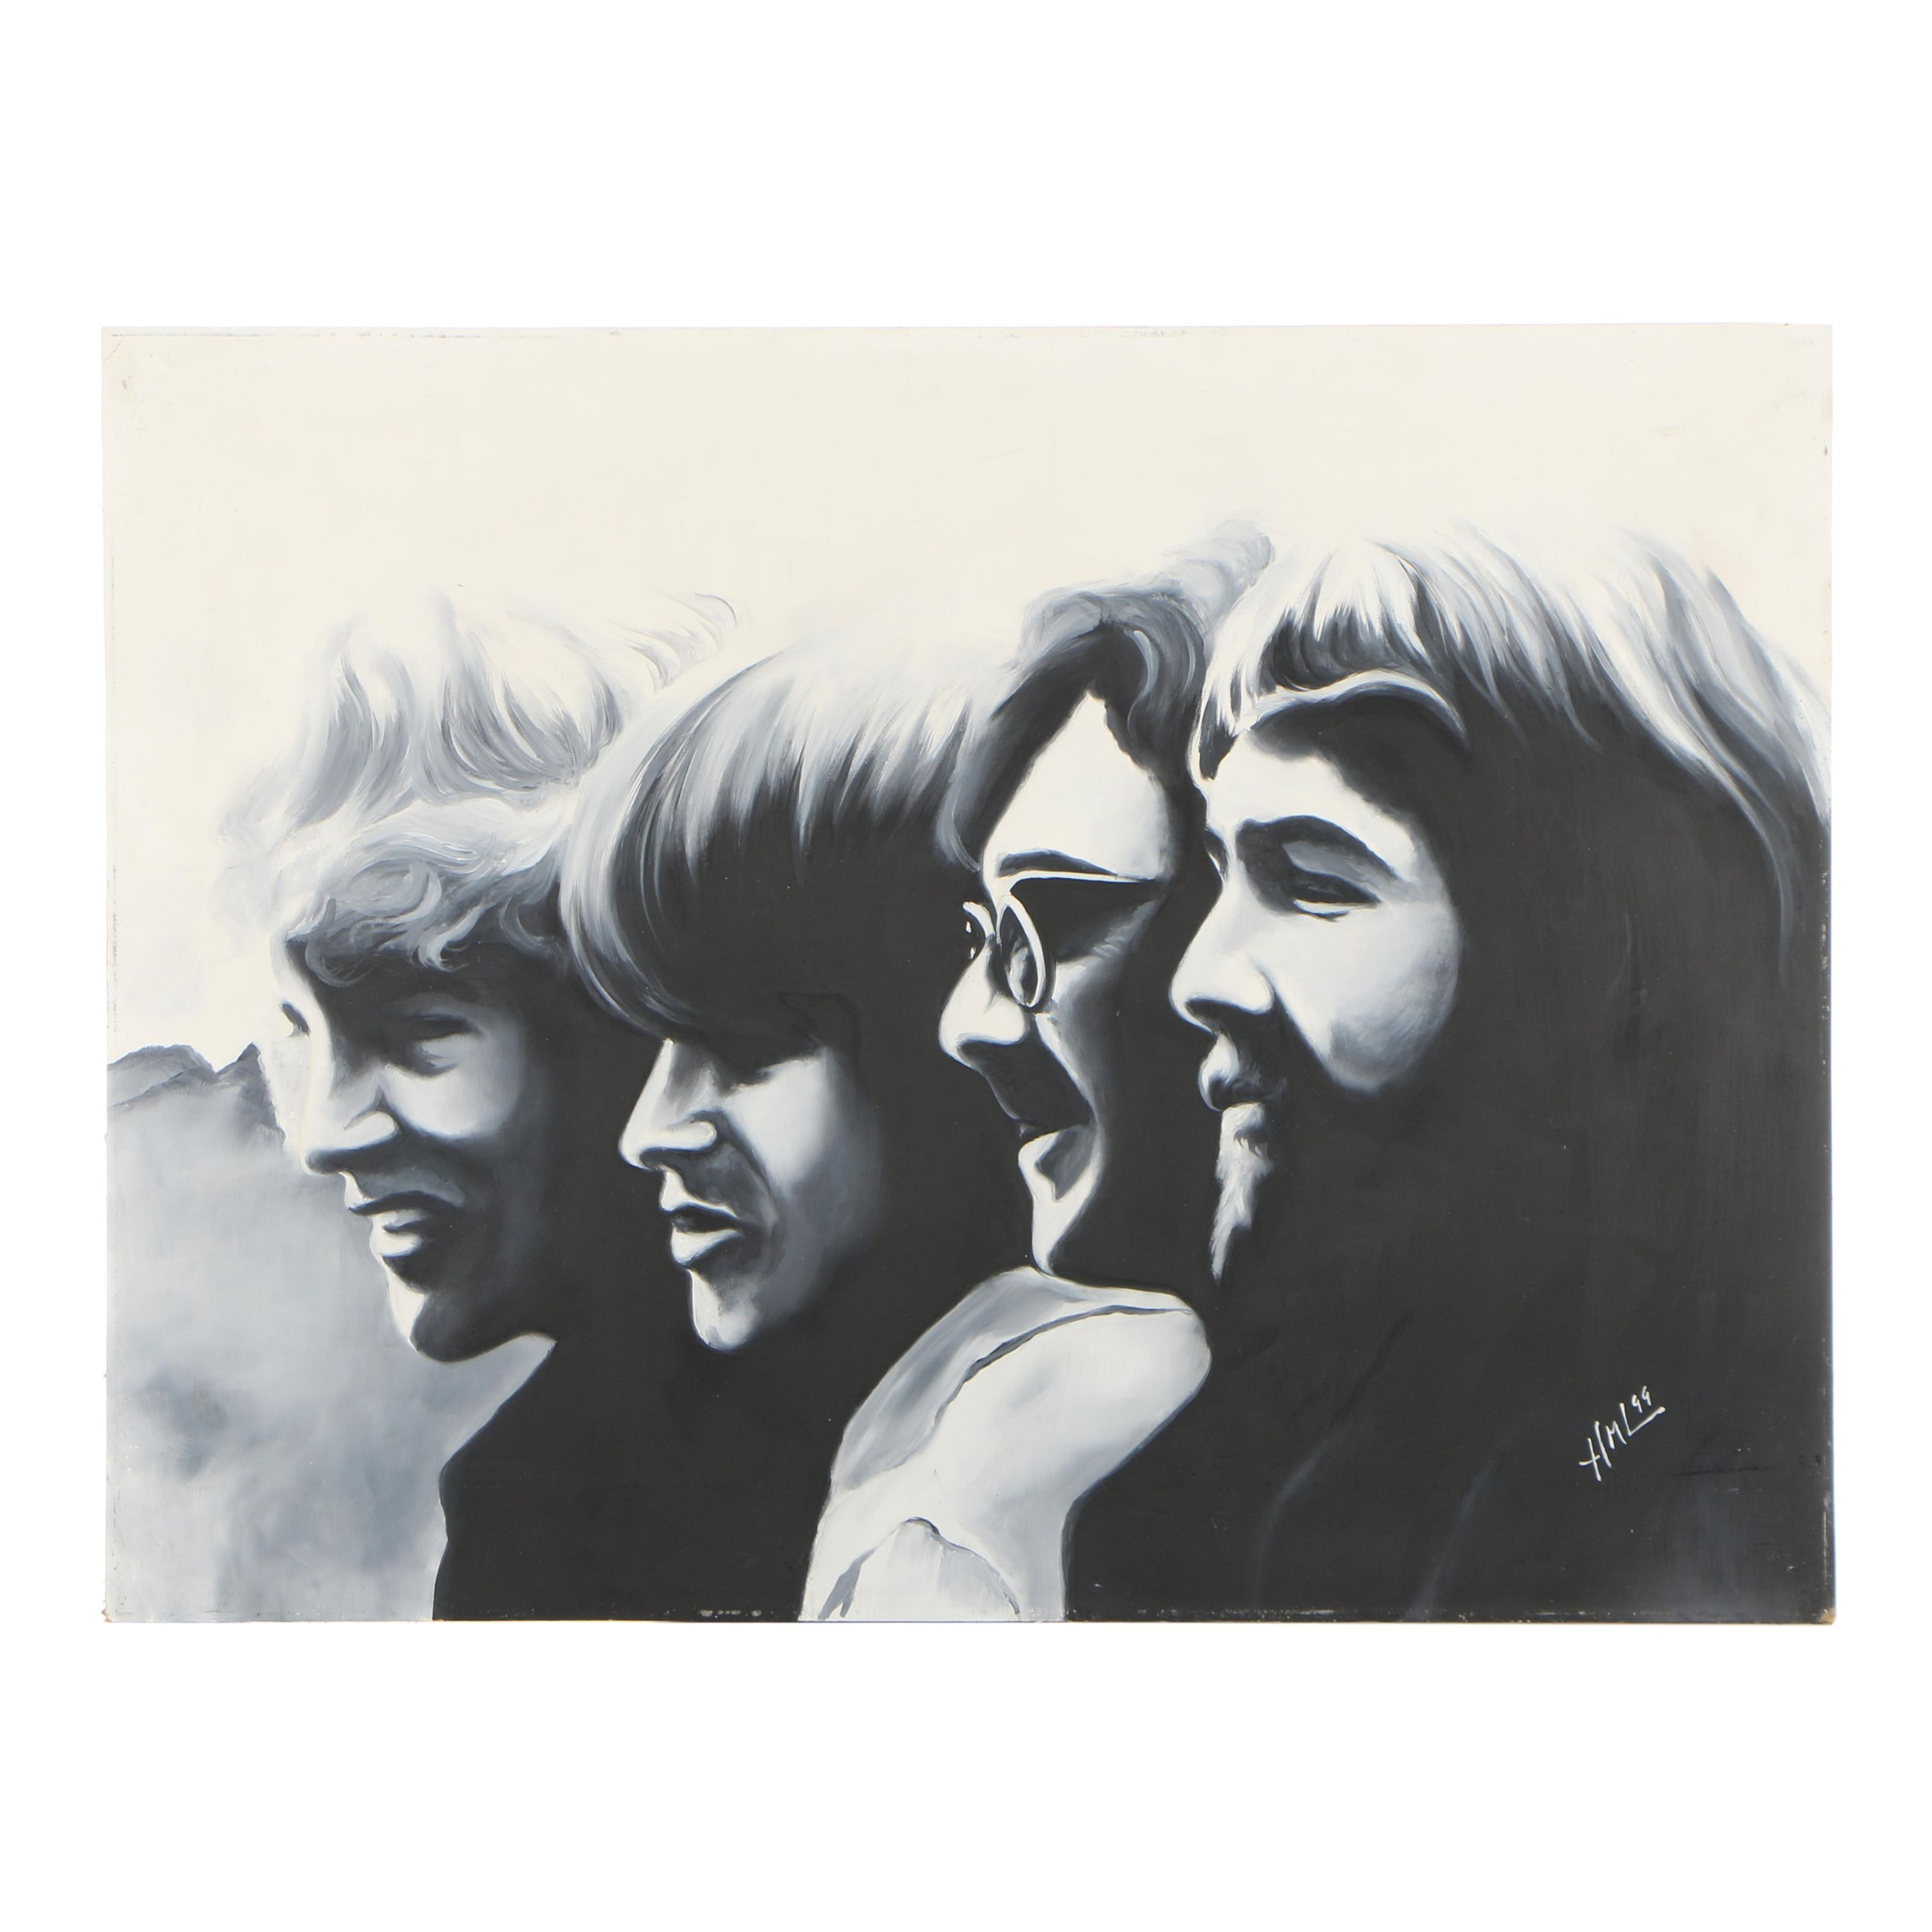 Hector Monroy (Monrock) 1999 Creedence Clearwater Revival Oil Painting on Board